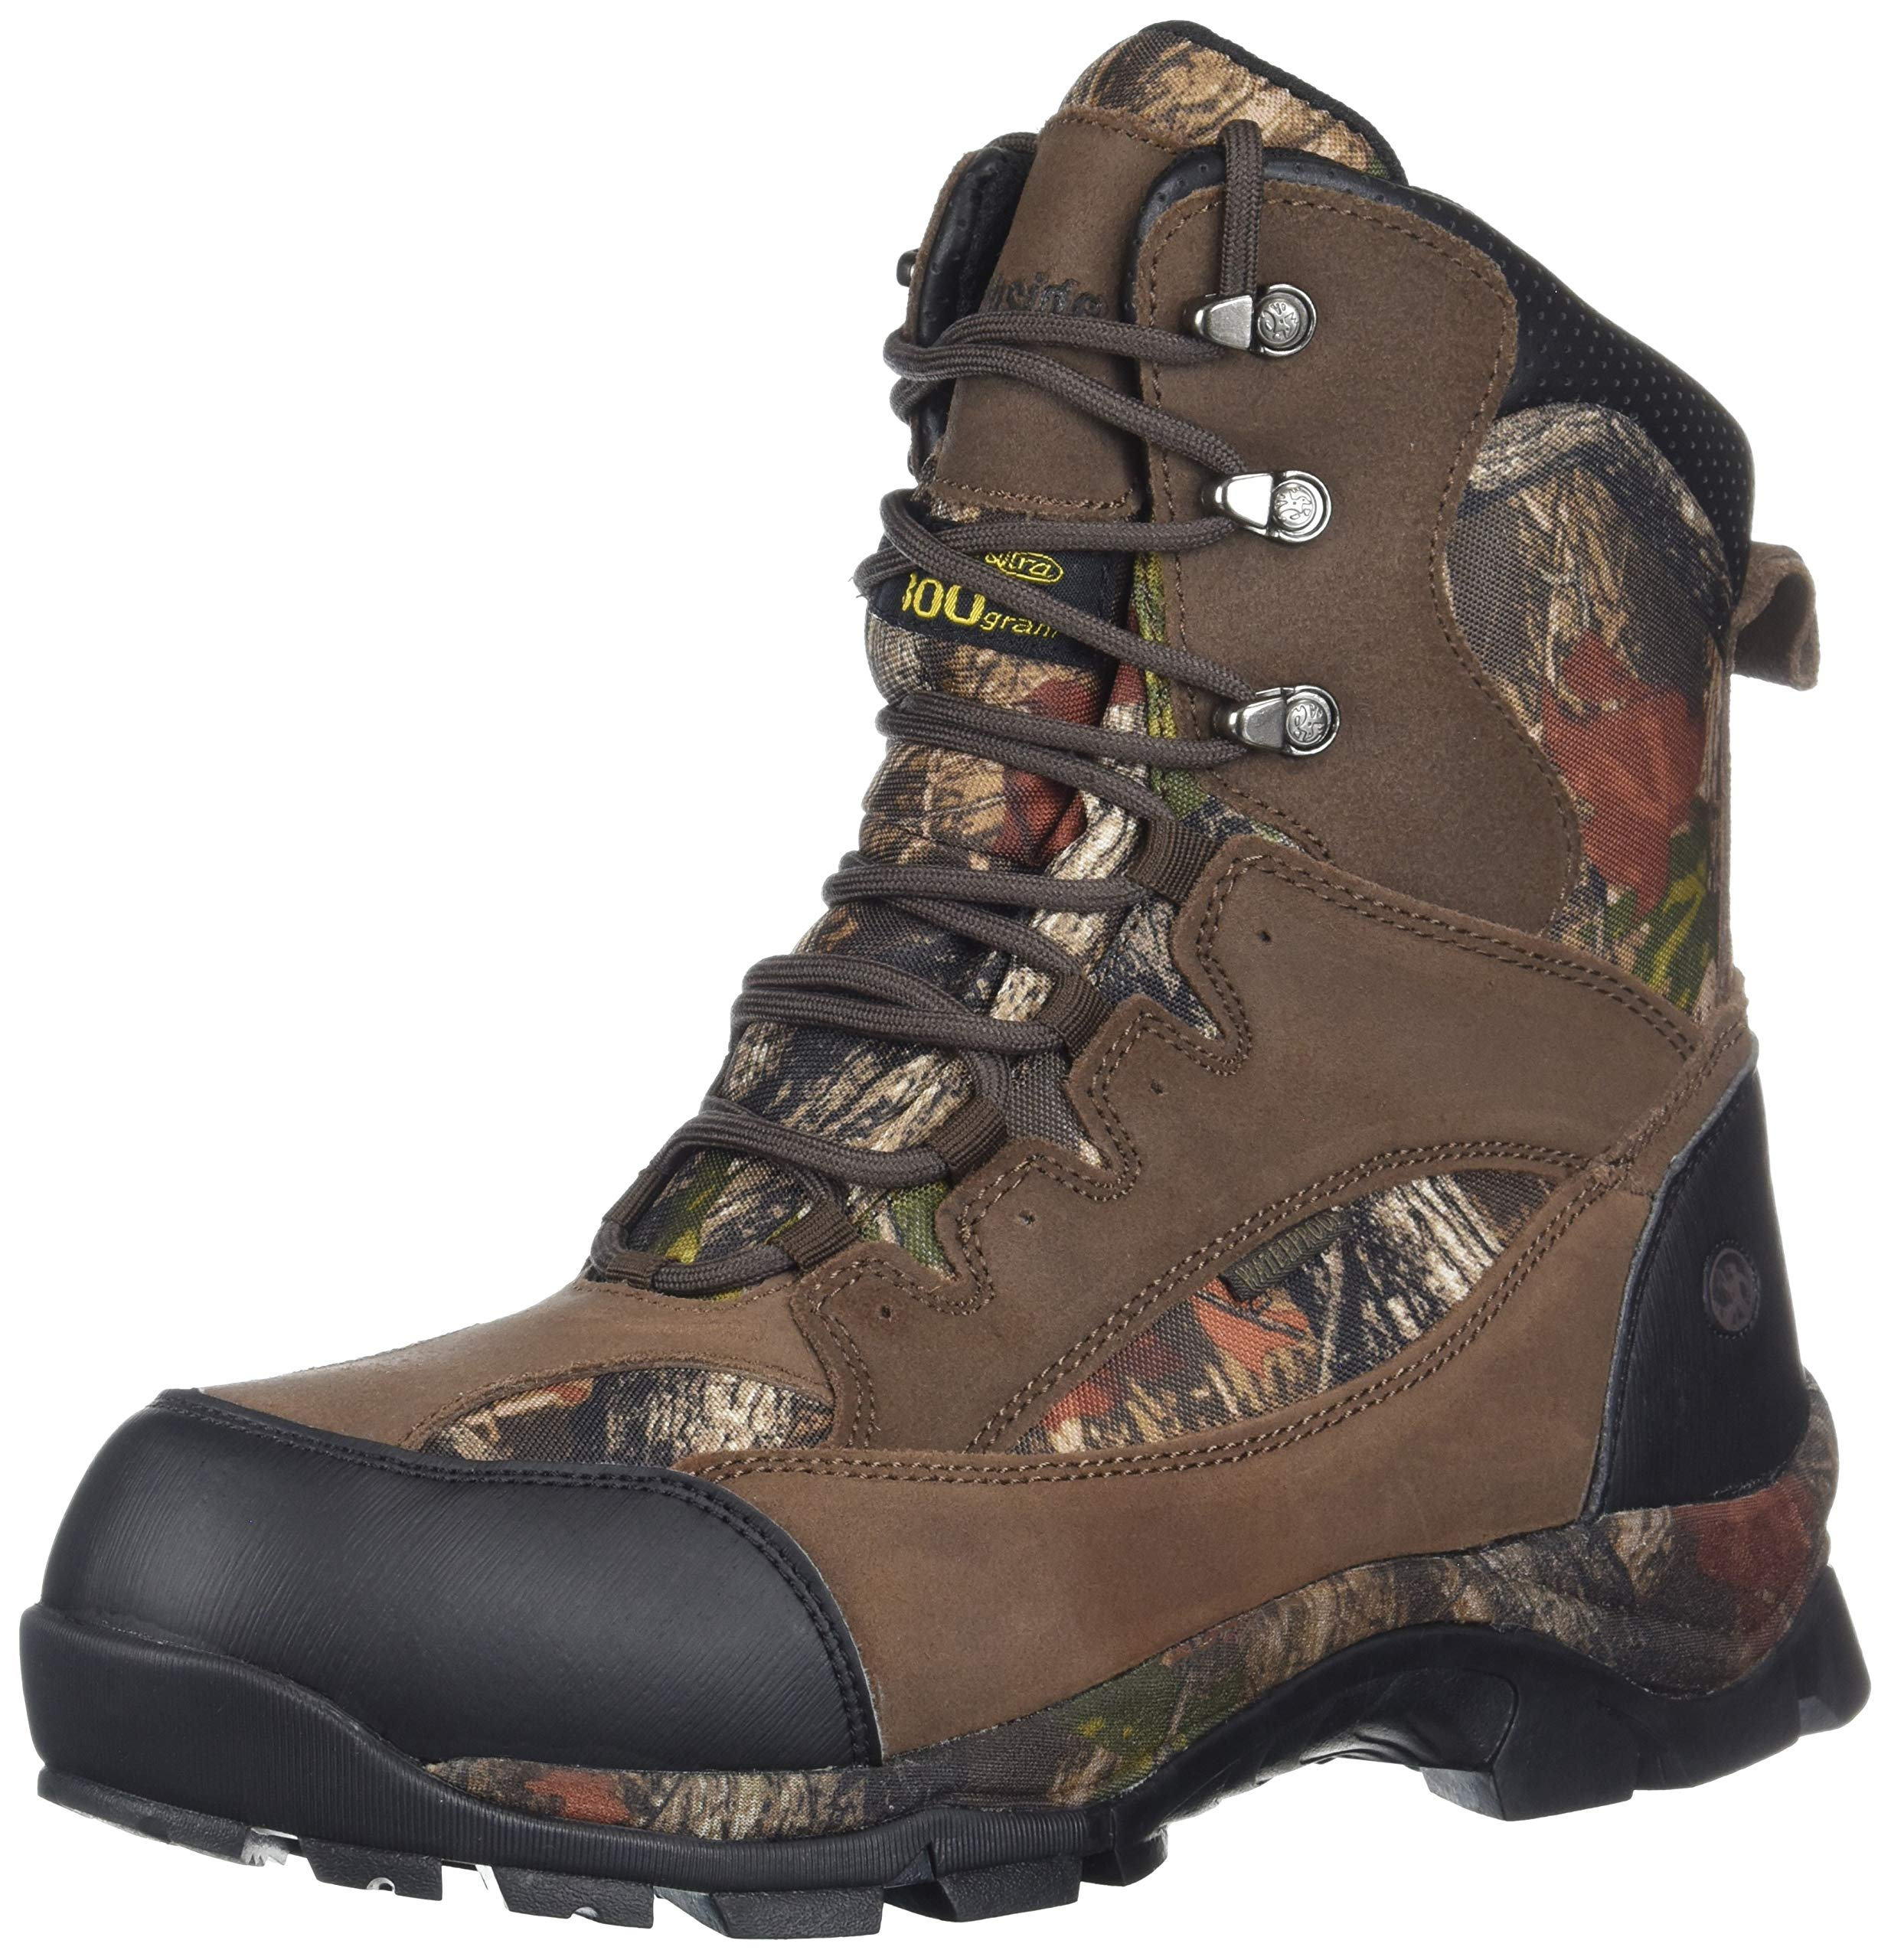 Northside Men's Renegade 800 Backpacking Boot, Daybreak Brown, 10.5 Medium US by Northside